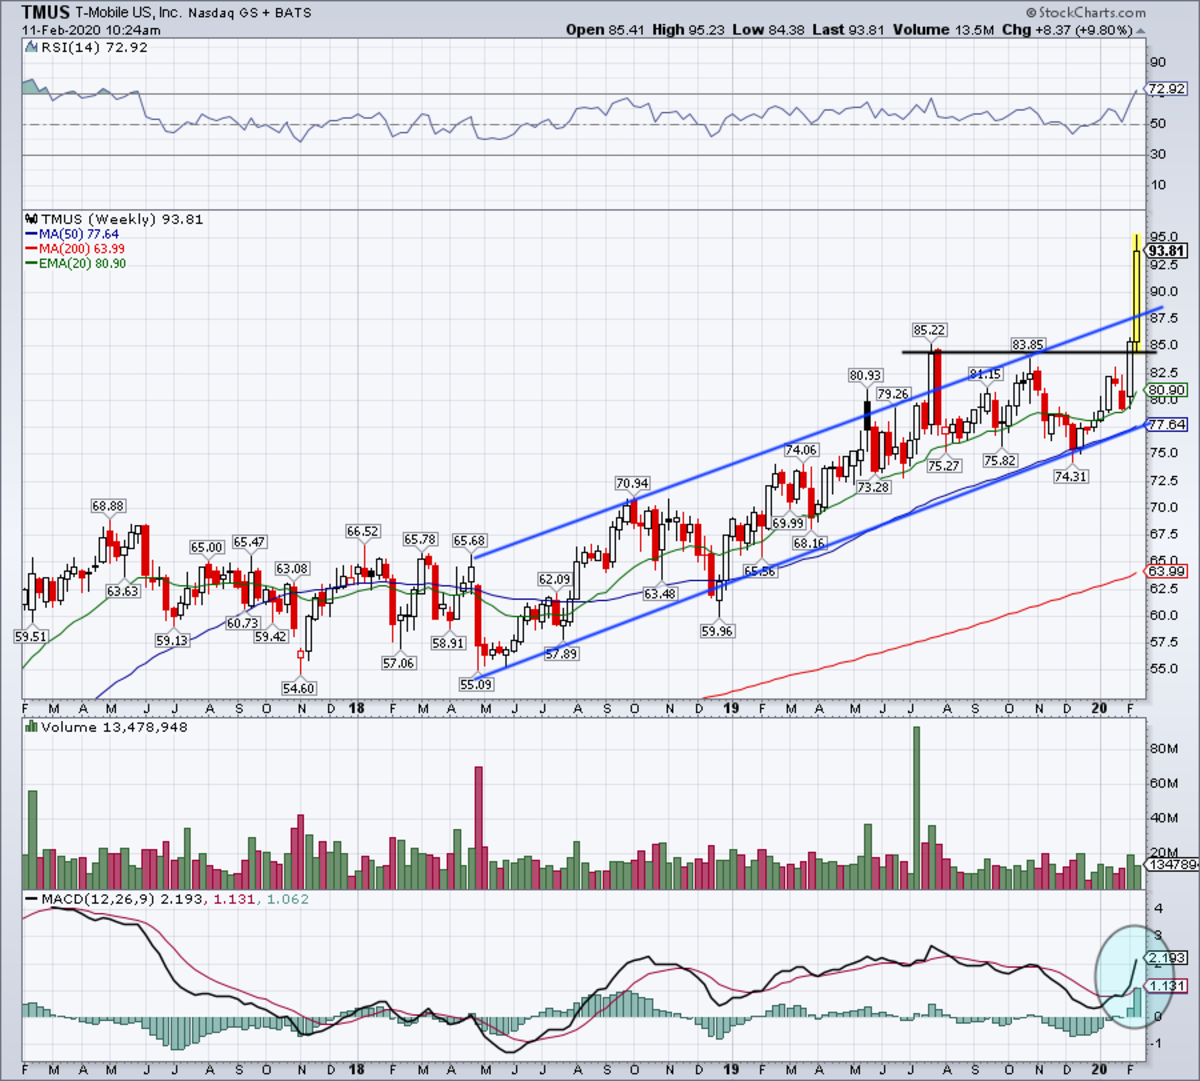 Weekly chart of T-Mobile stock.